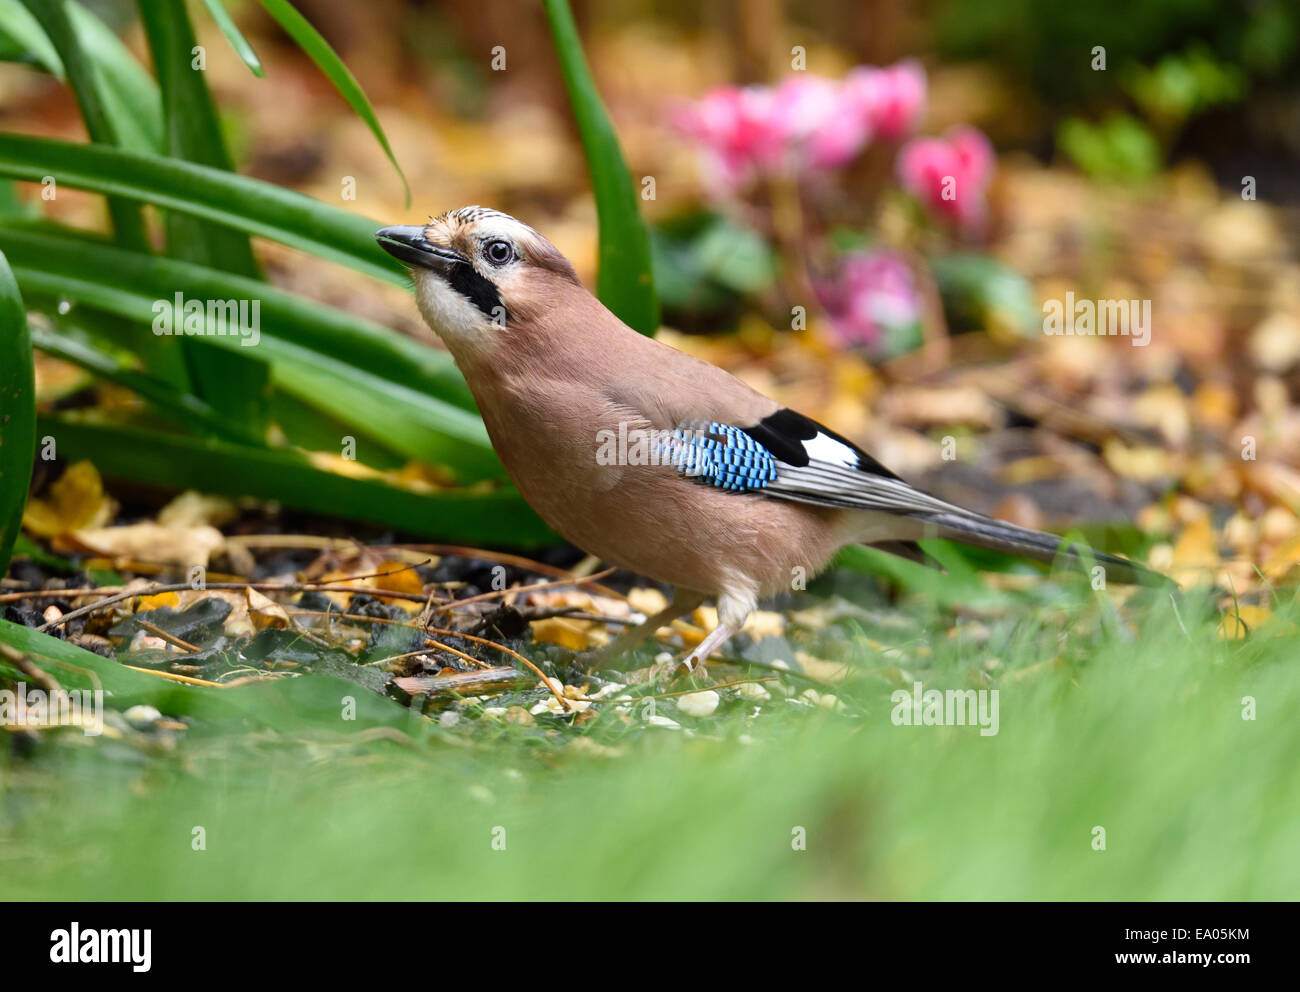 Jay visting a London garden in Autumn, stocking up on food for winter Stock Photo